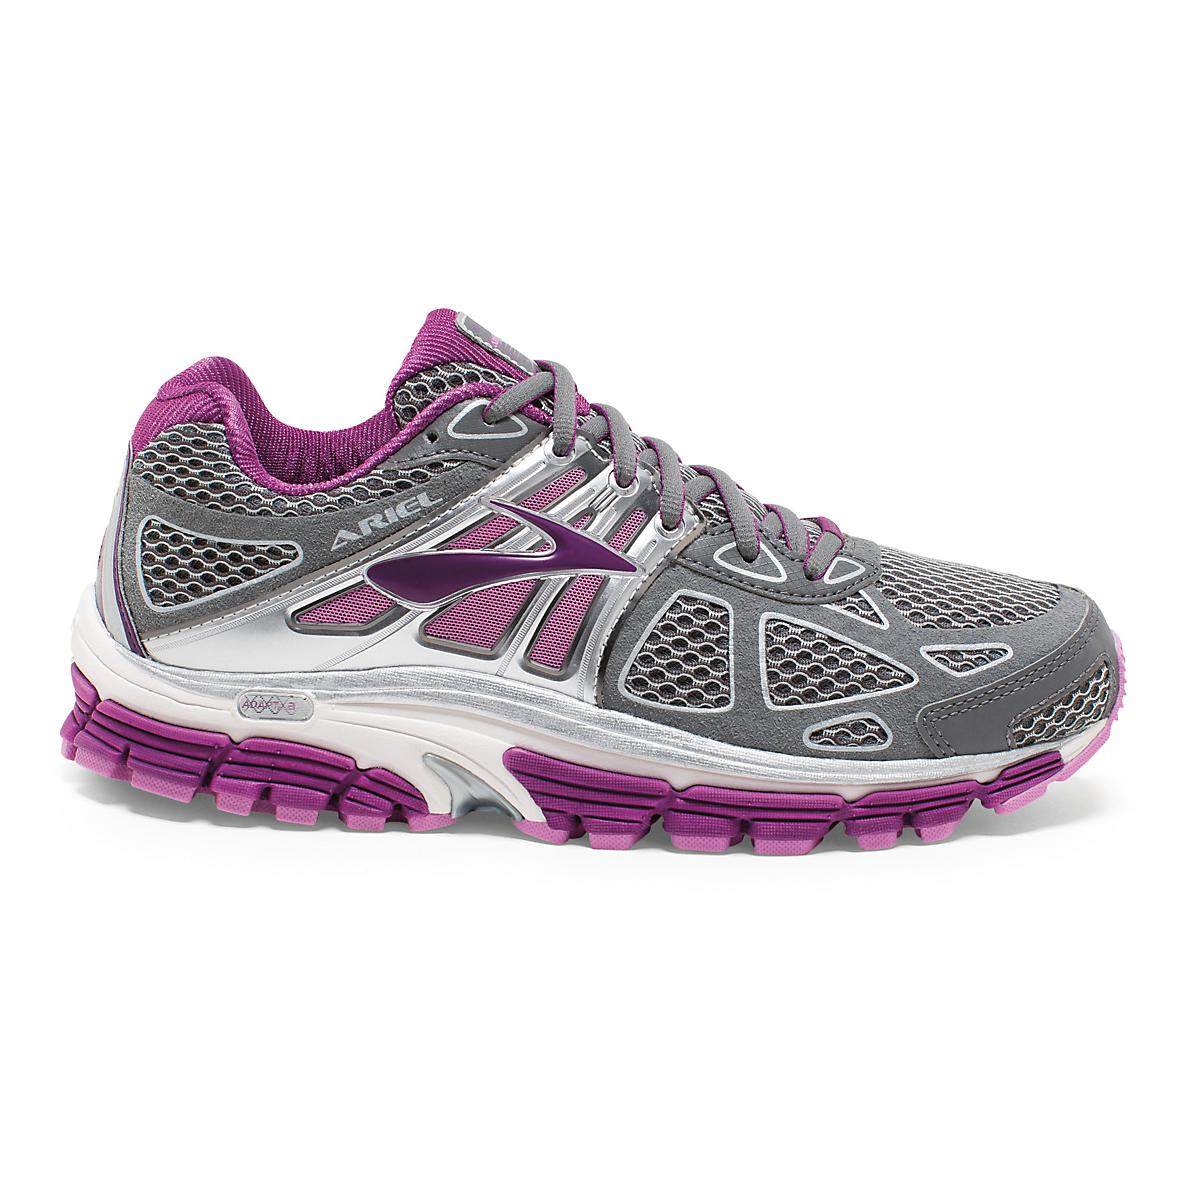 ba946a0cd09 Womens Brooks Ariel 14 Running Shoe at Road Runner Sports